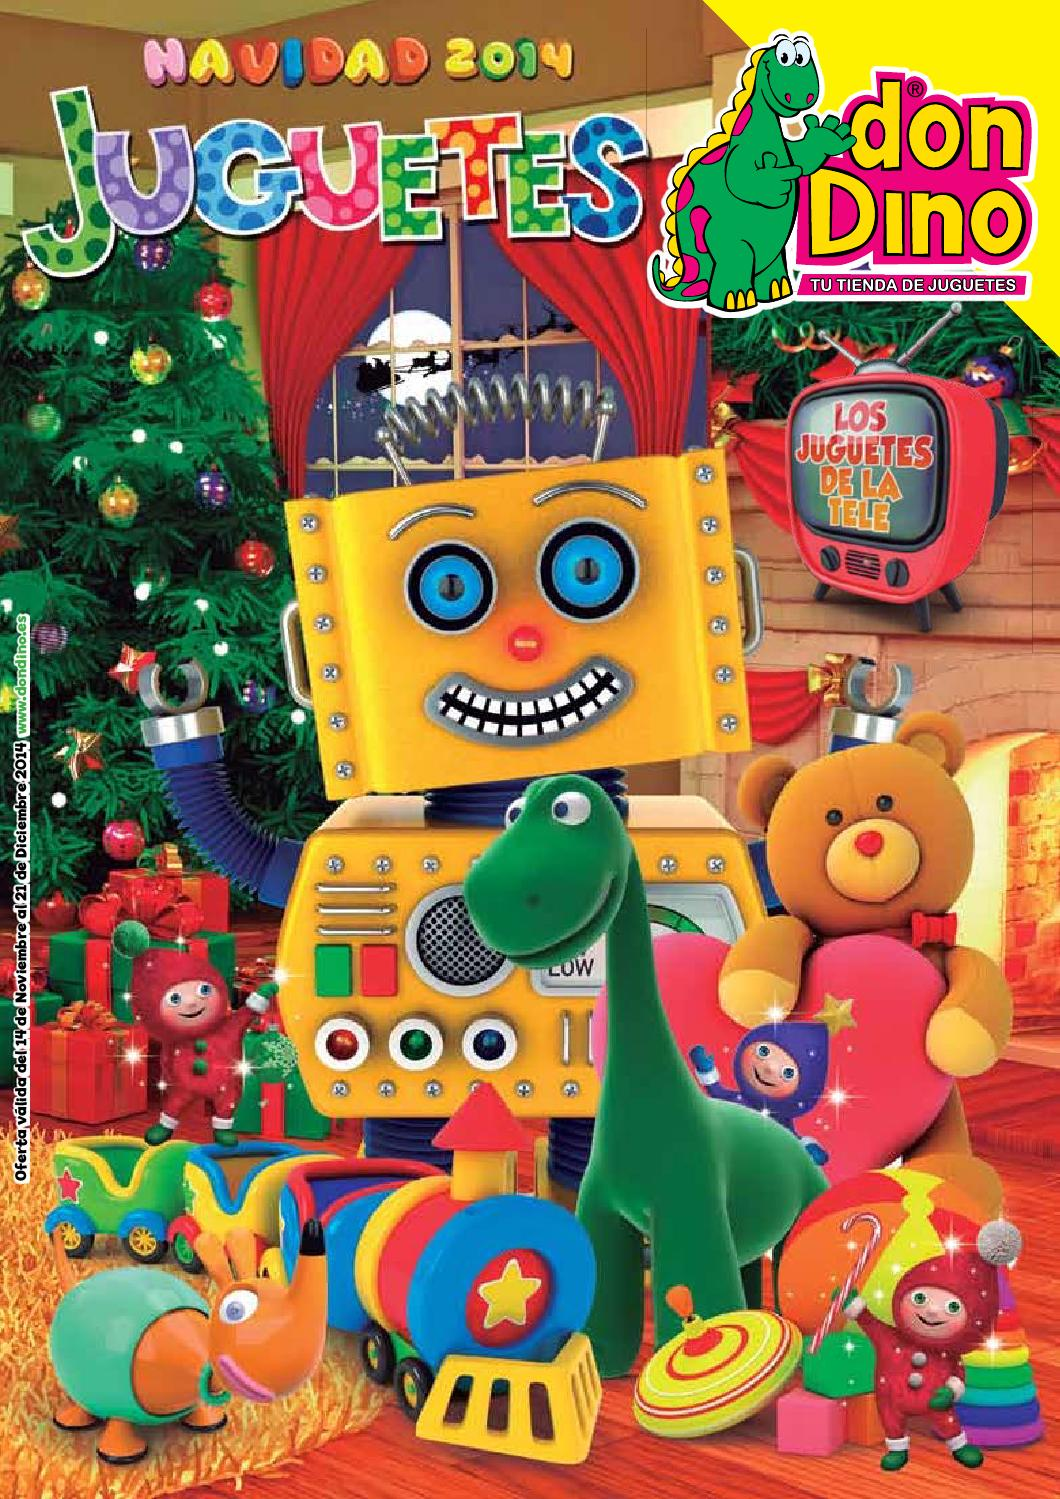 Don Dino Navidad 2014 By Solerdesign - Issuu-8280